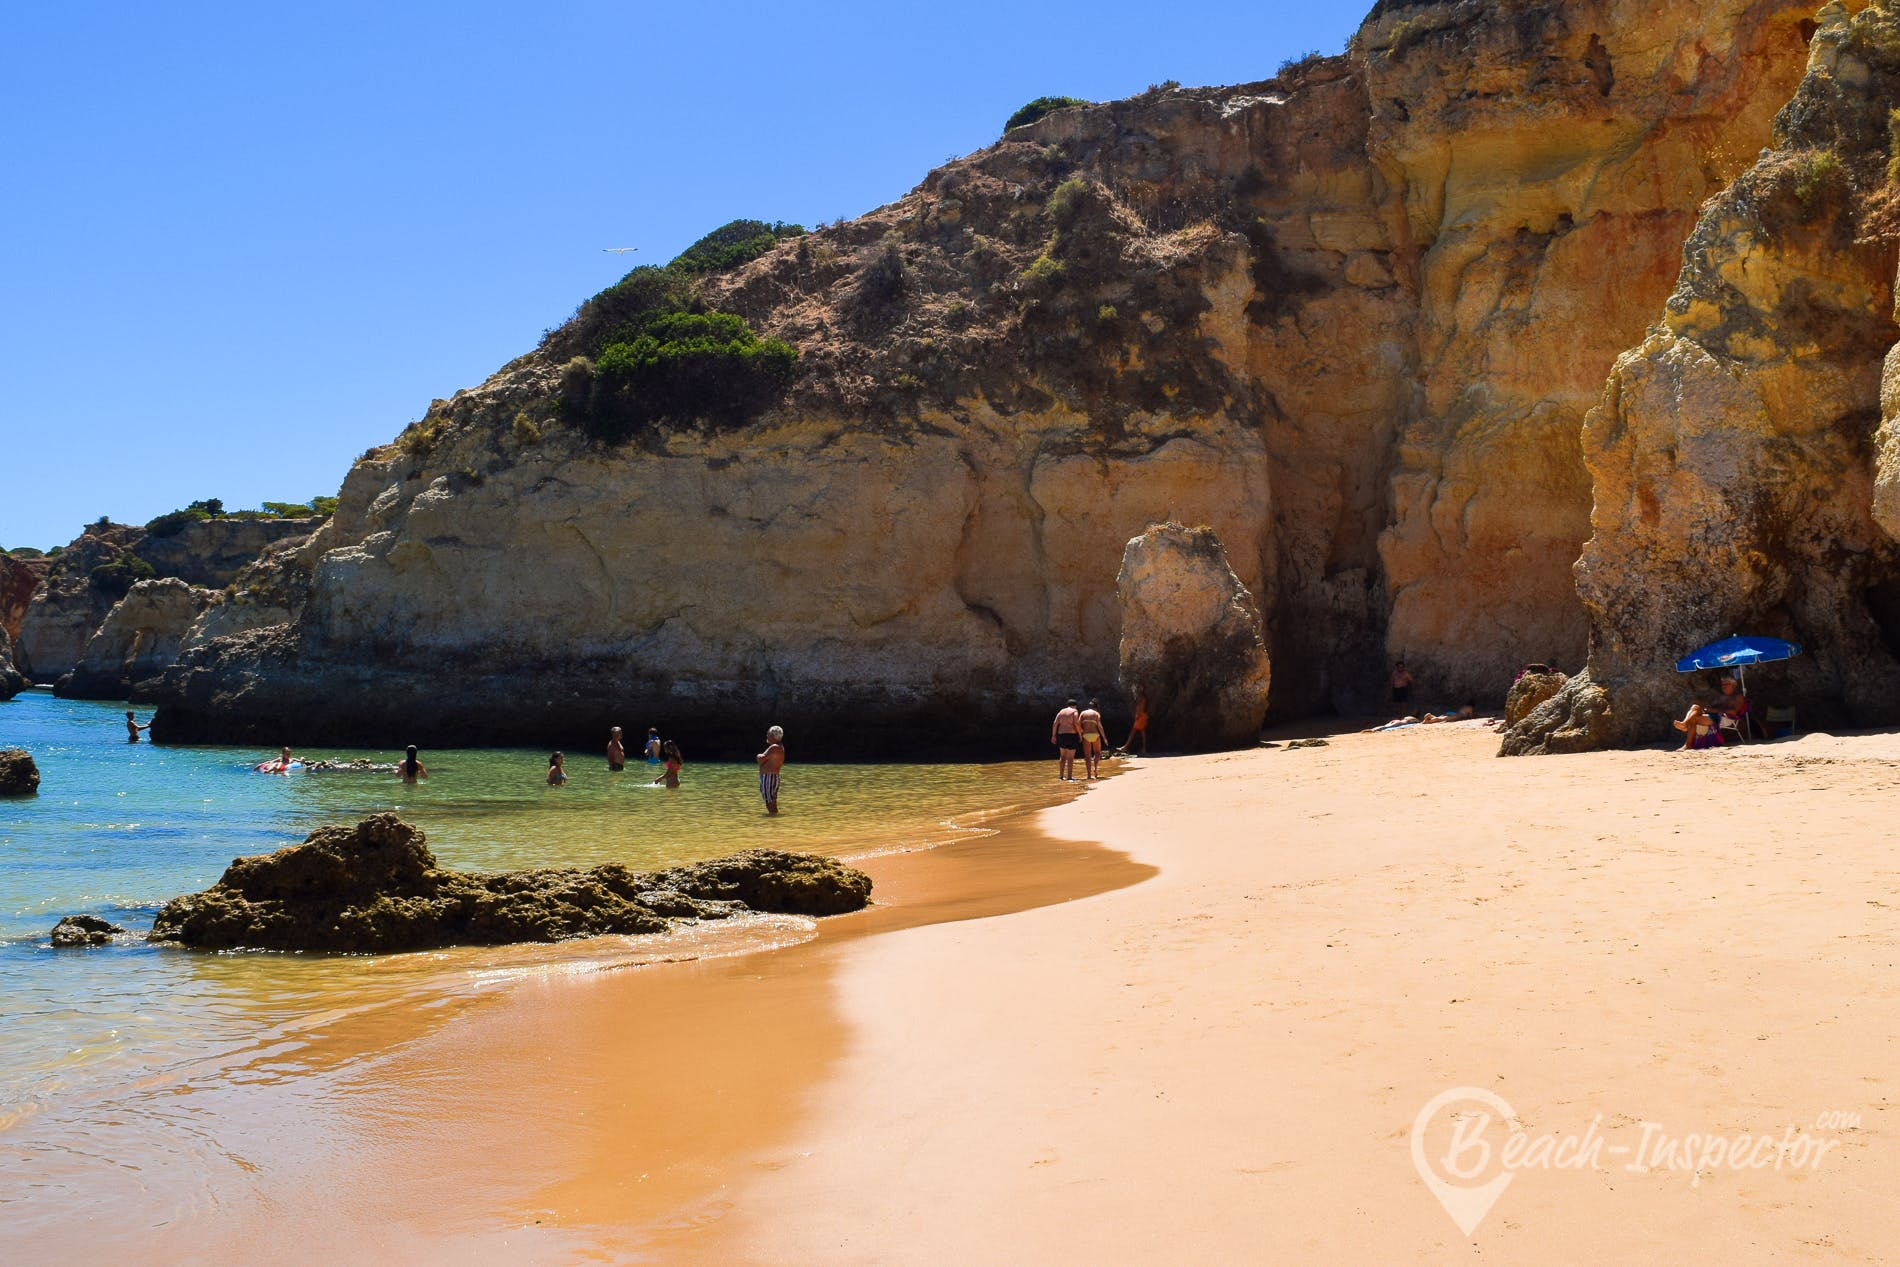 Playa Praia do Boiao, Algarve, Portugal